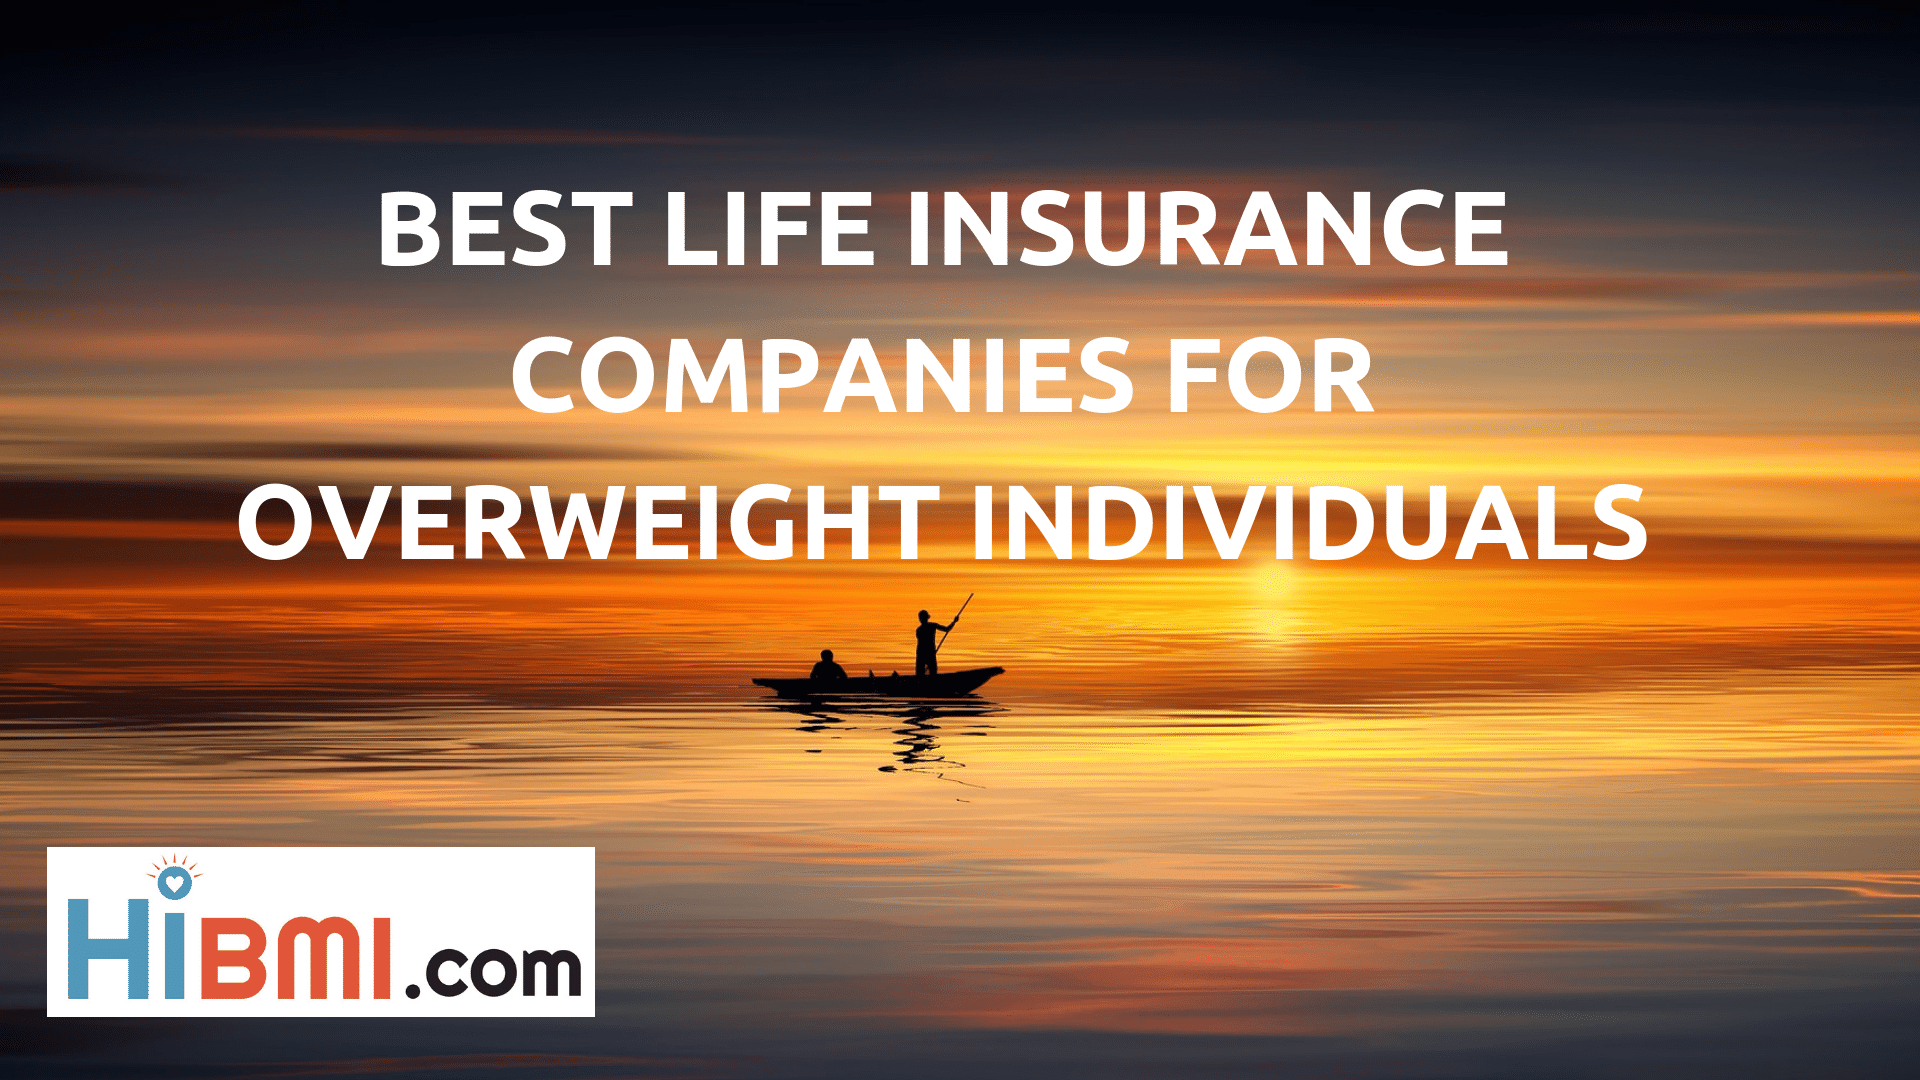 life insurance for overweight people, life insurance for overweight individuals, term life insurance, substandard policy, whole life insurance, universal life insurance